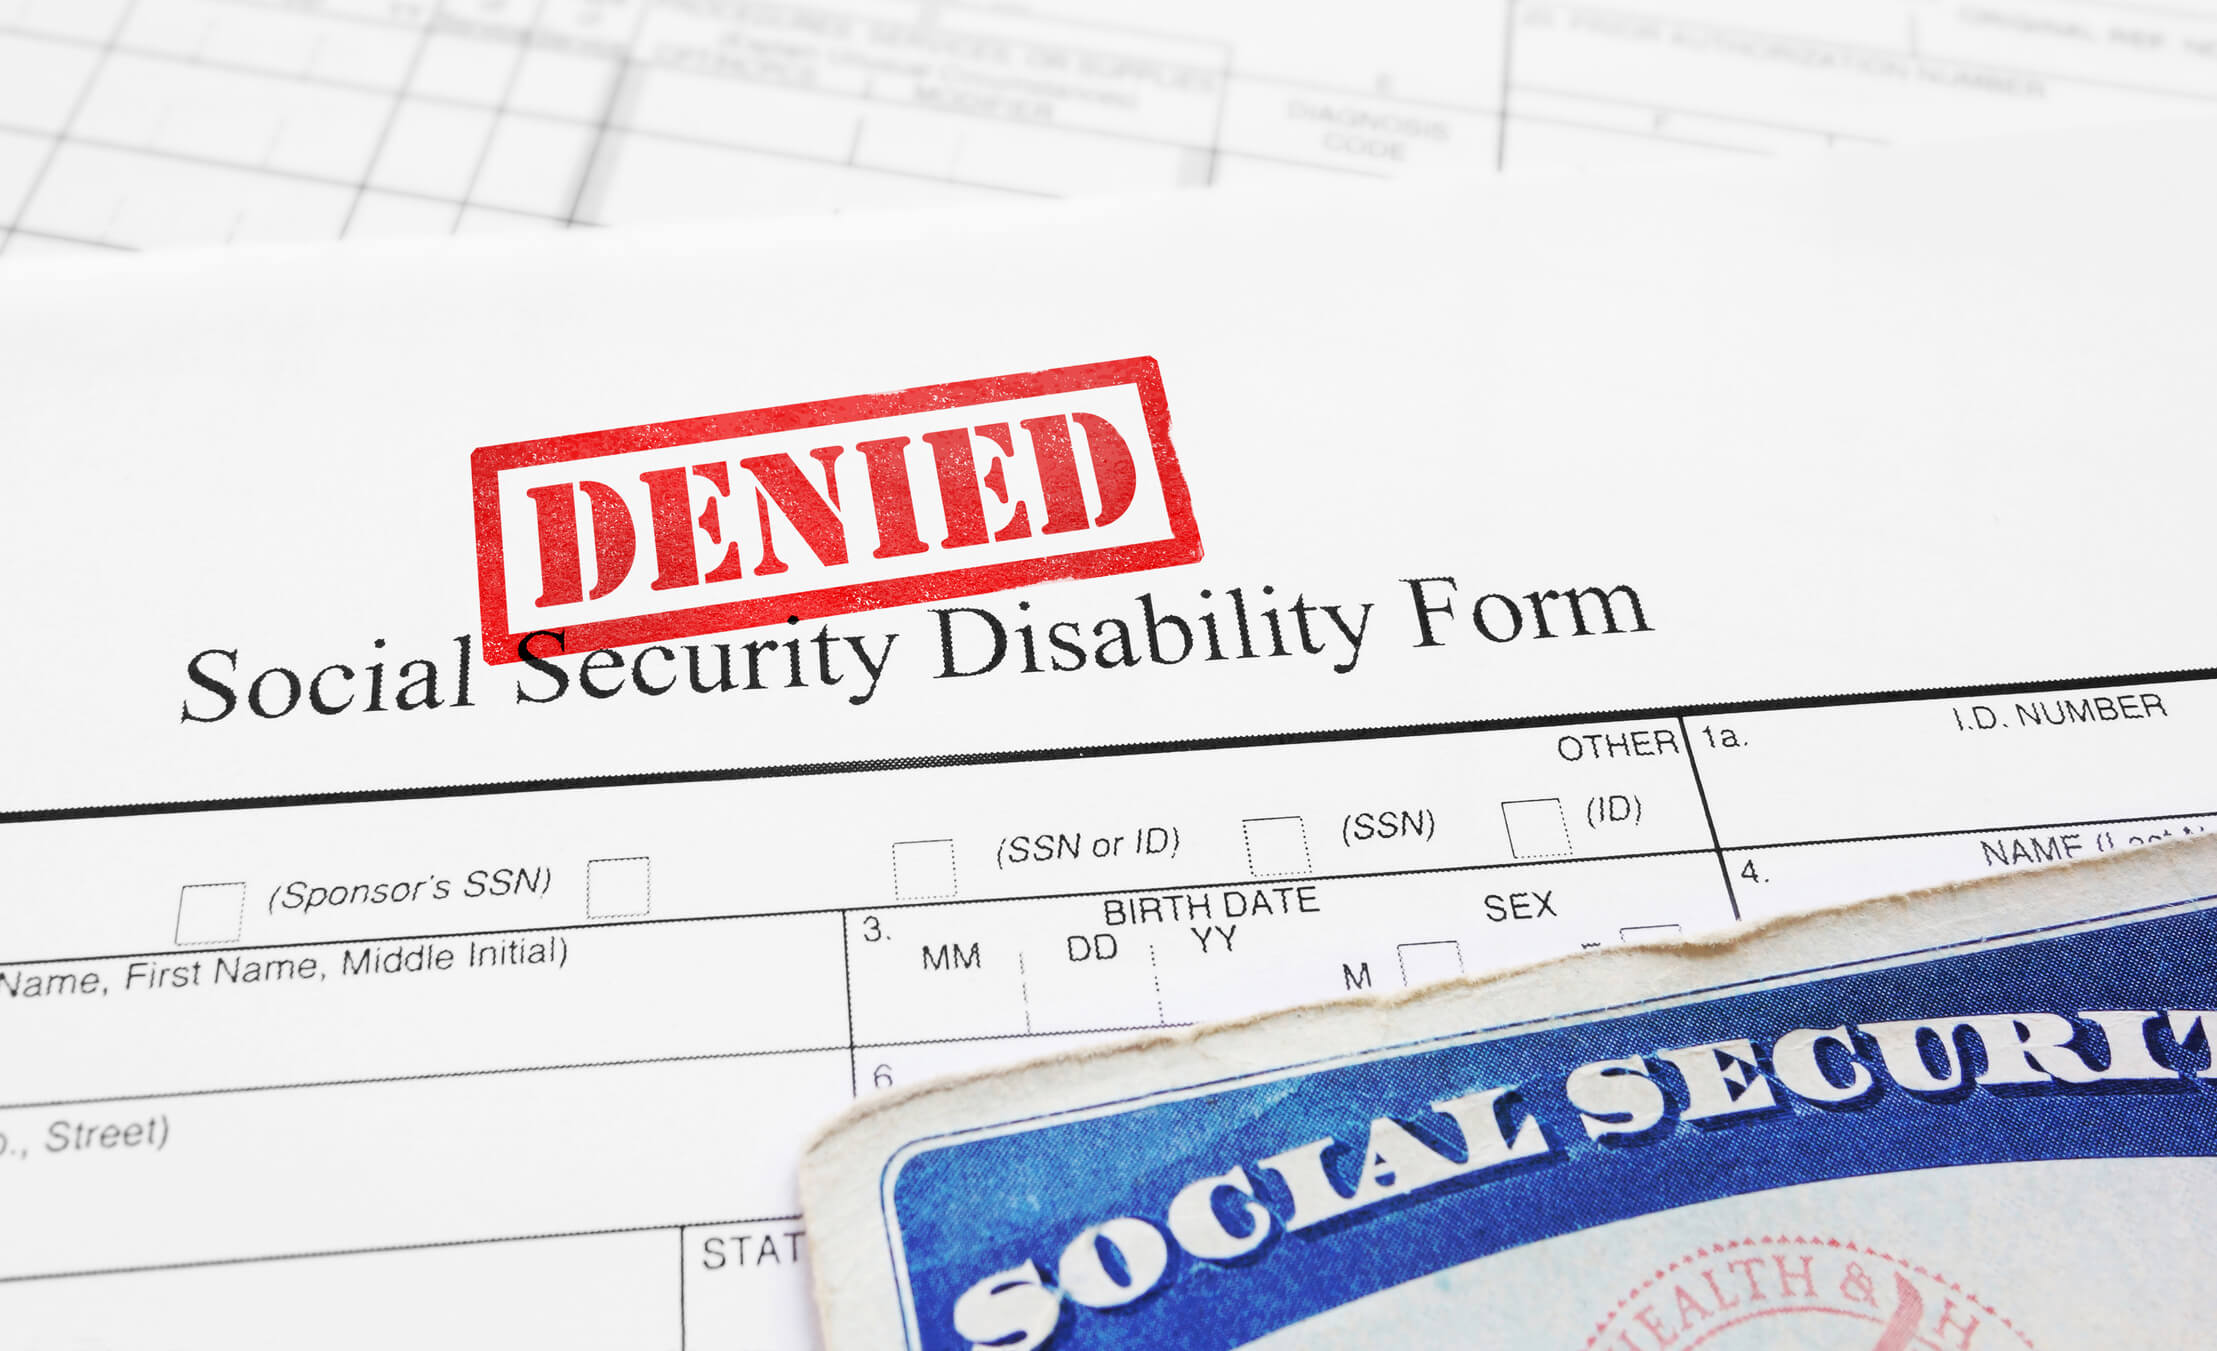 The Disability Law Group discusses what you should do if you have been denied social security disability benefits.